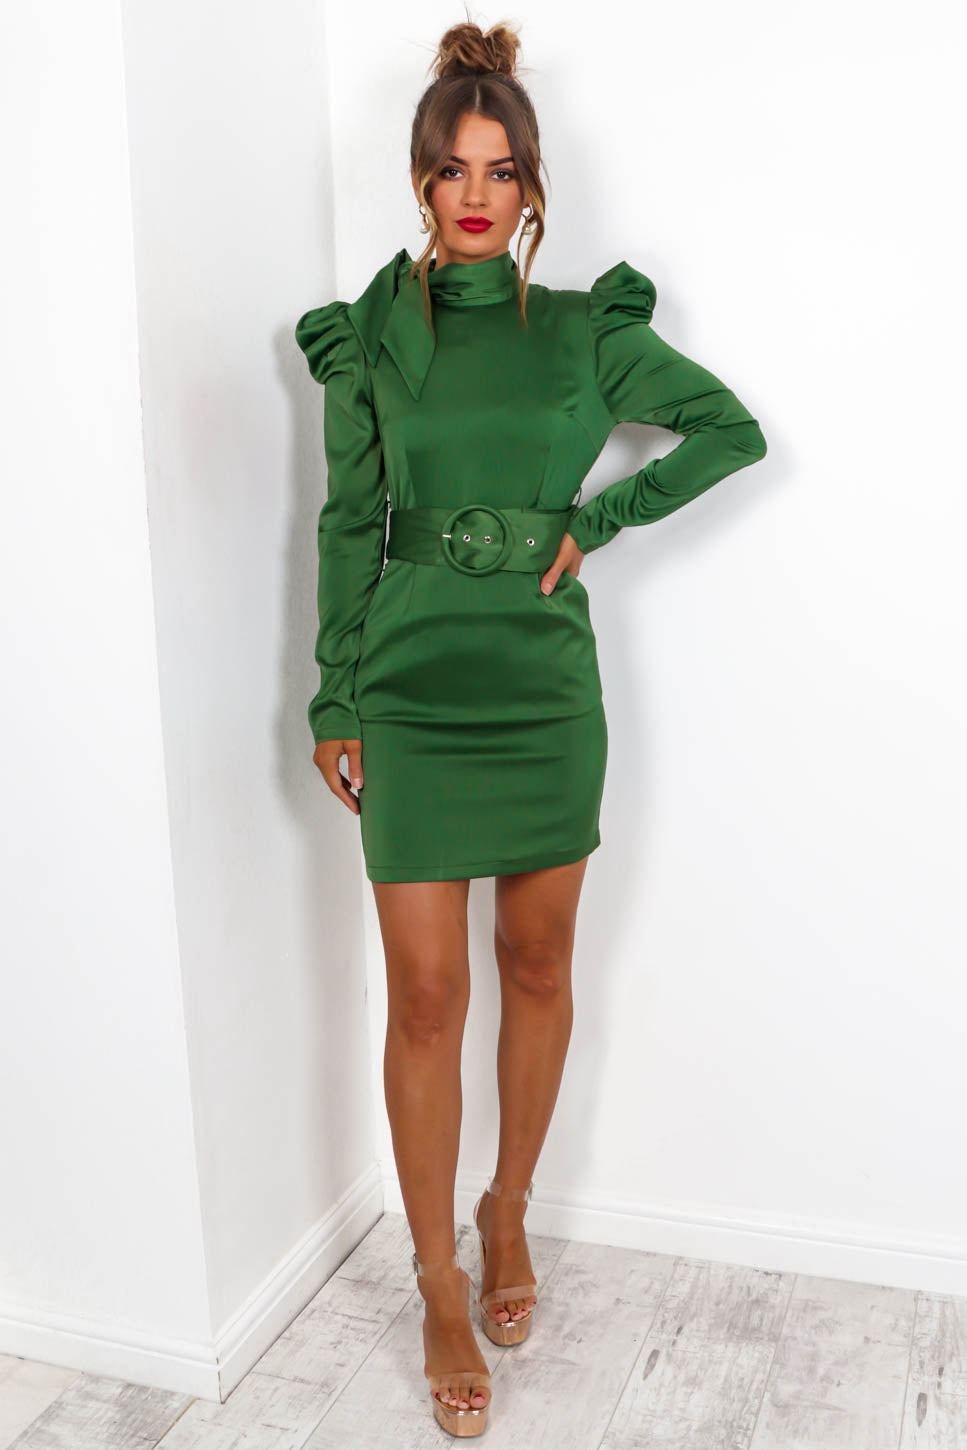 Love Struck - Mini Dress In EMERALD